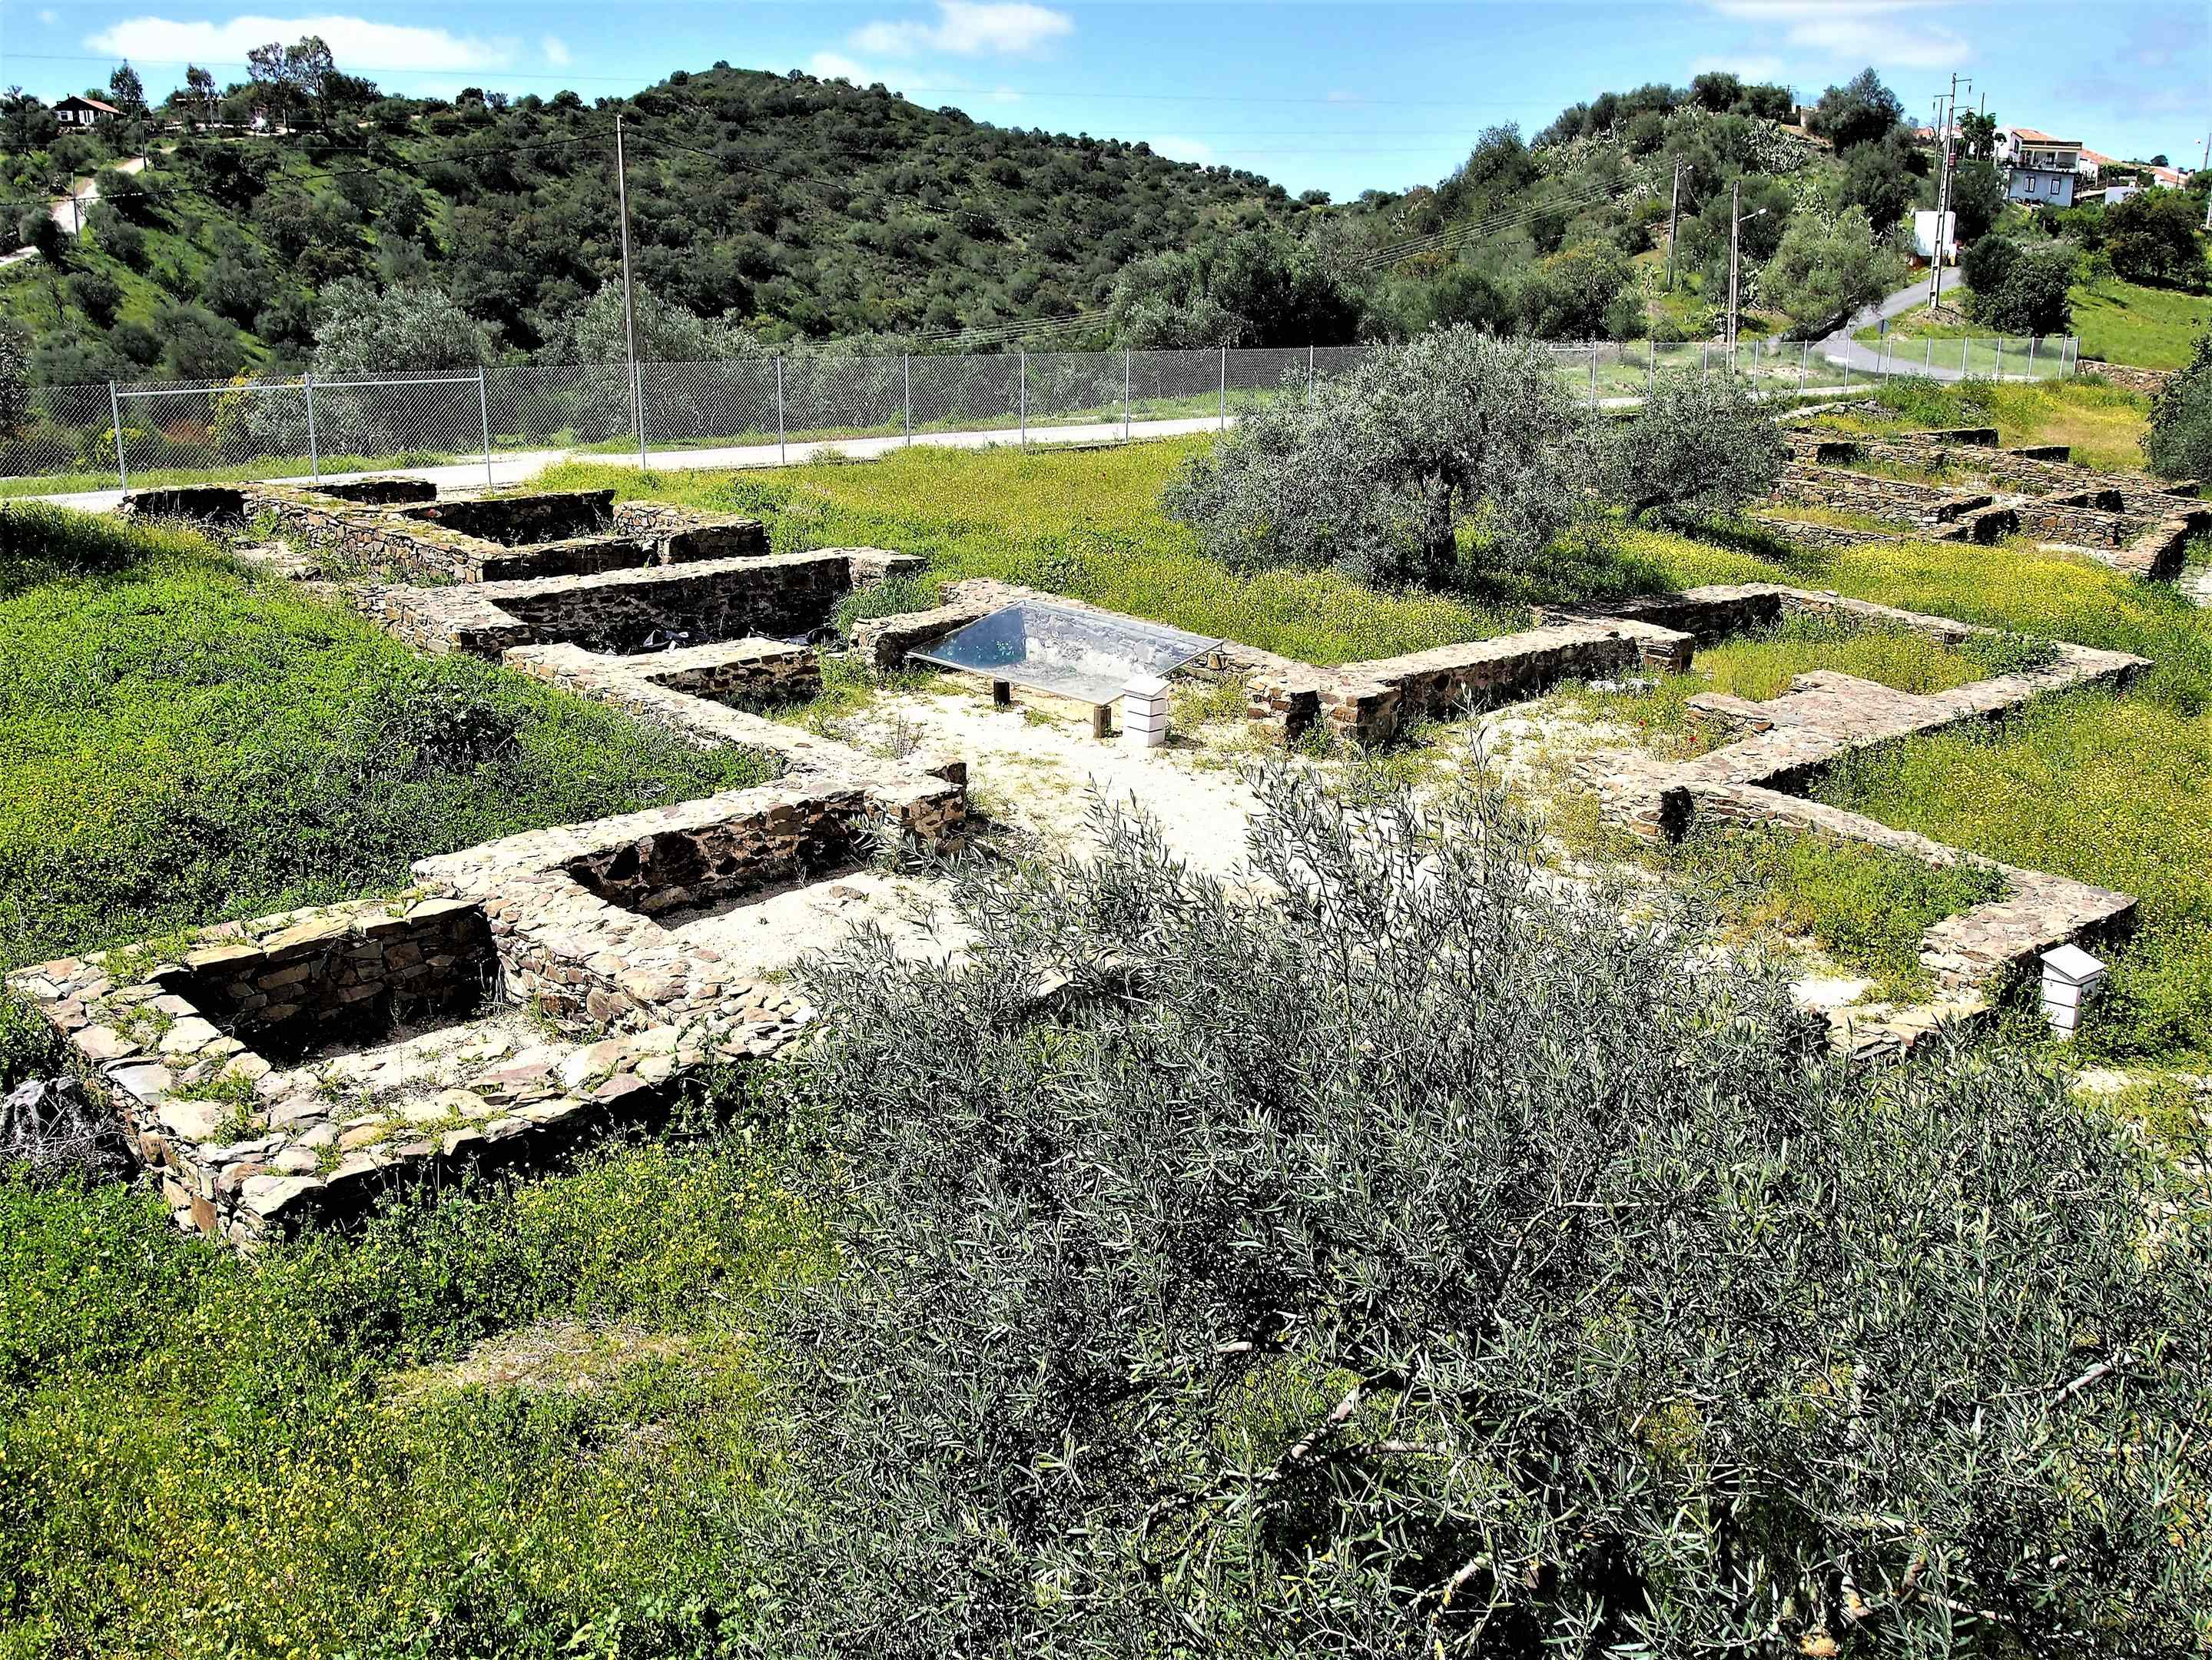 The remains of Vila Romana da Montinho das Larajeiras, near Alcoutim